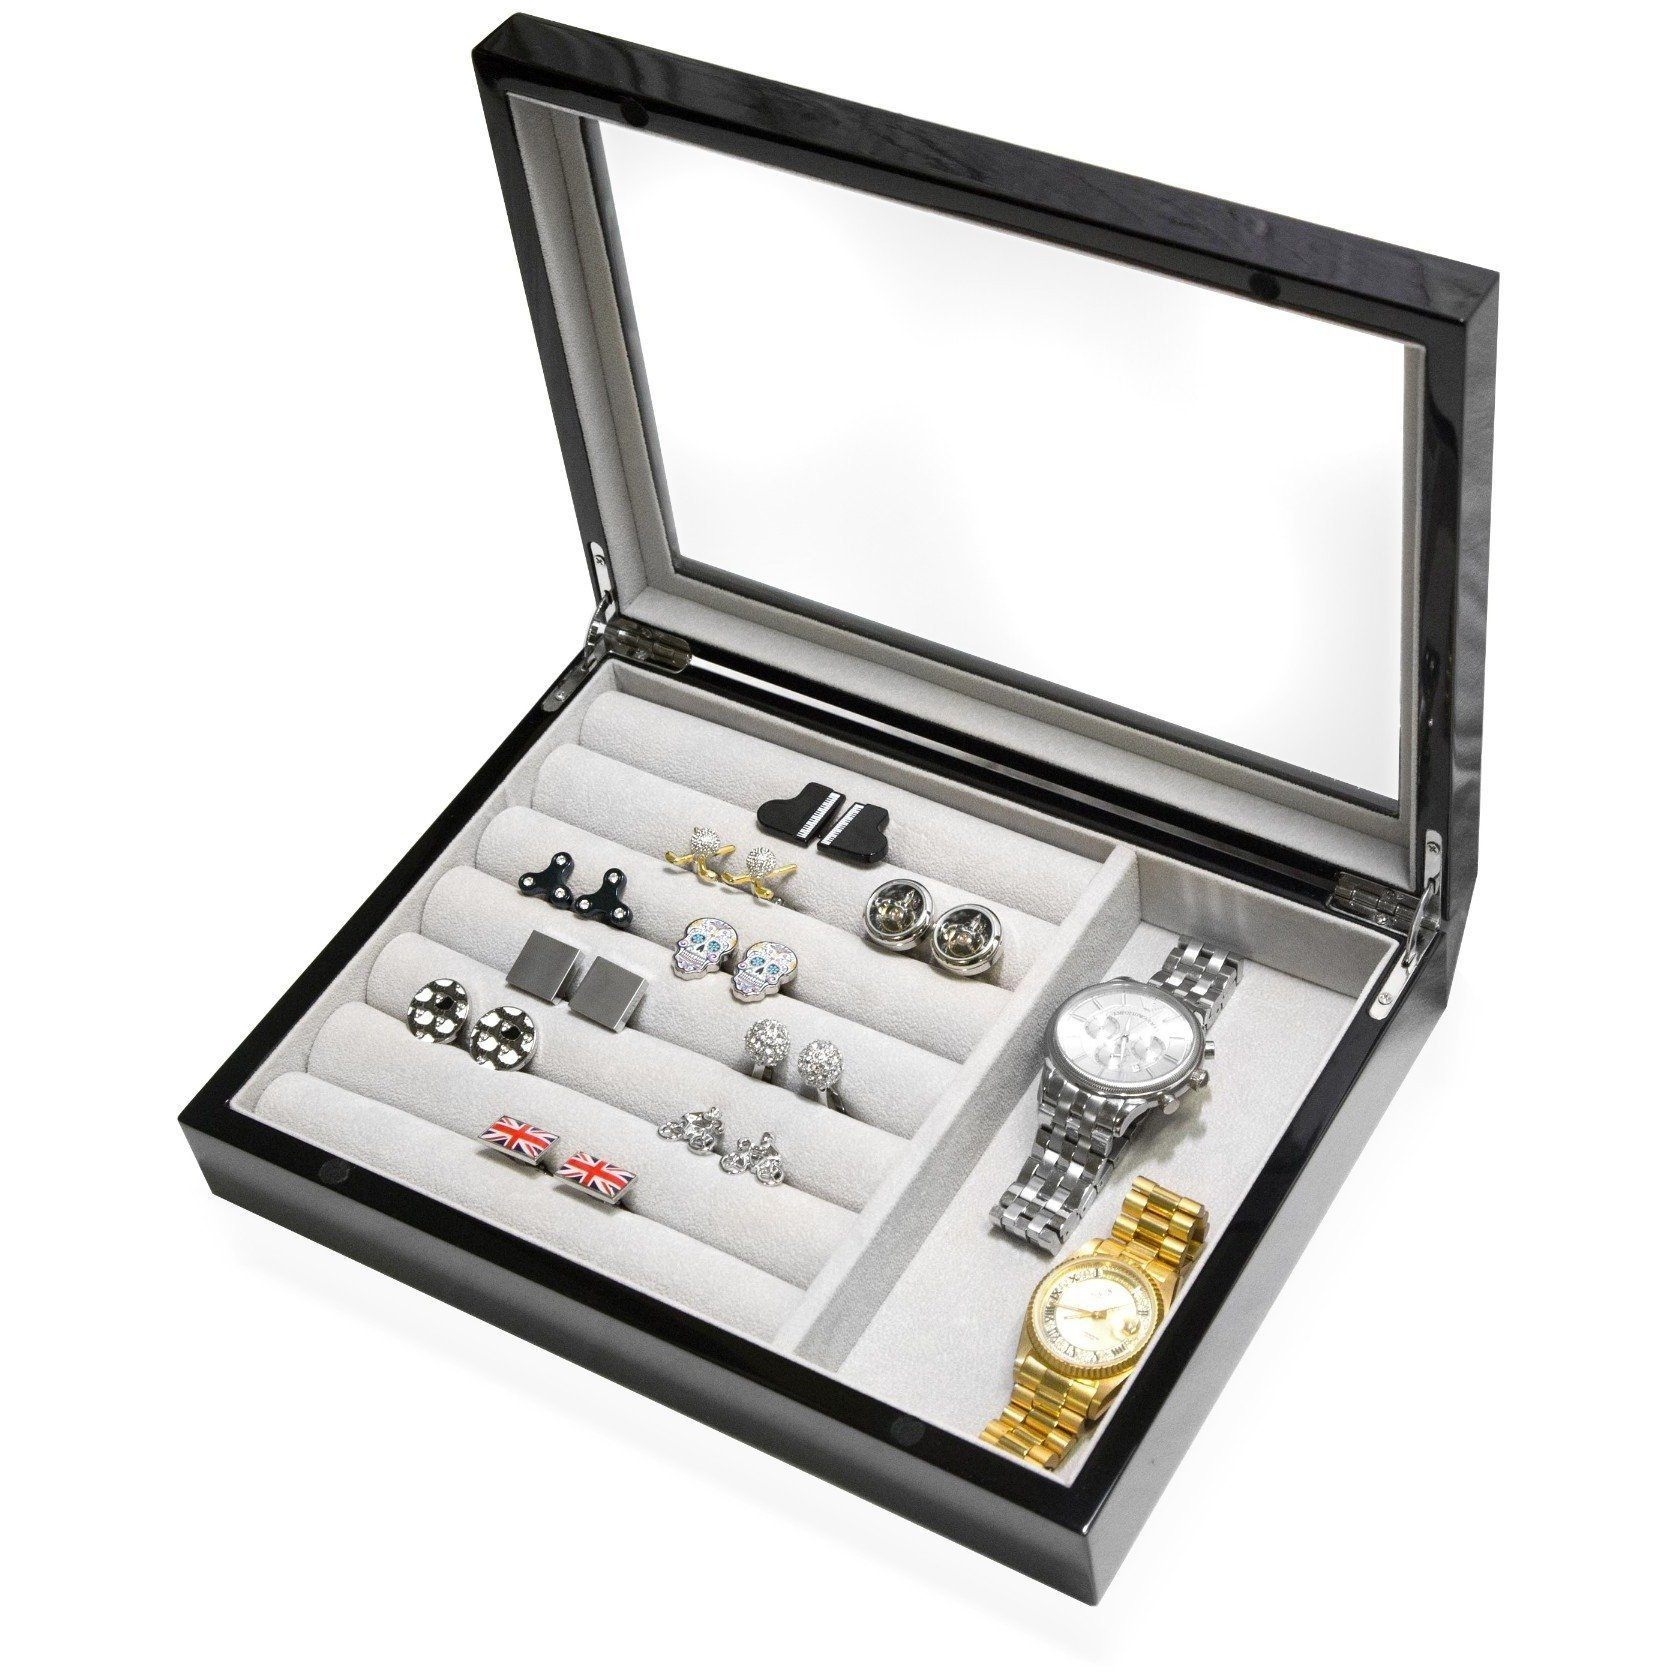 Medium Cufflink and Valet Box Black, Storage Boxes, Cuffed.com.au, CB3046, $125.00